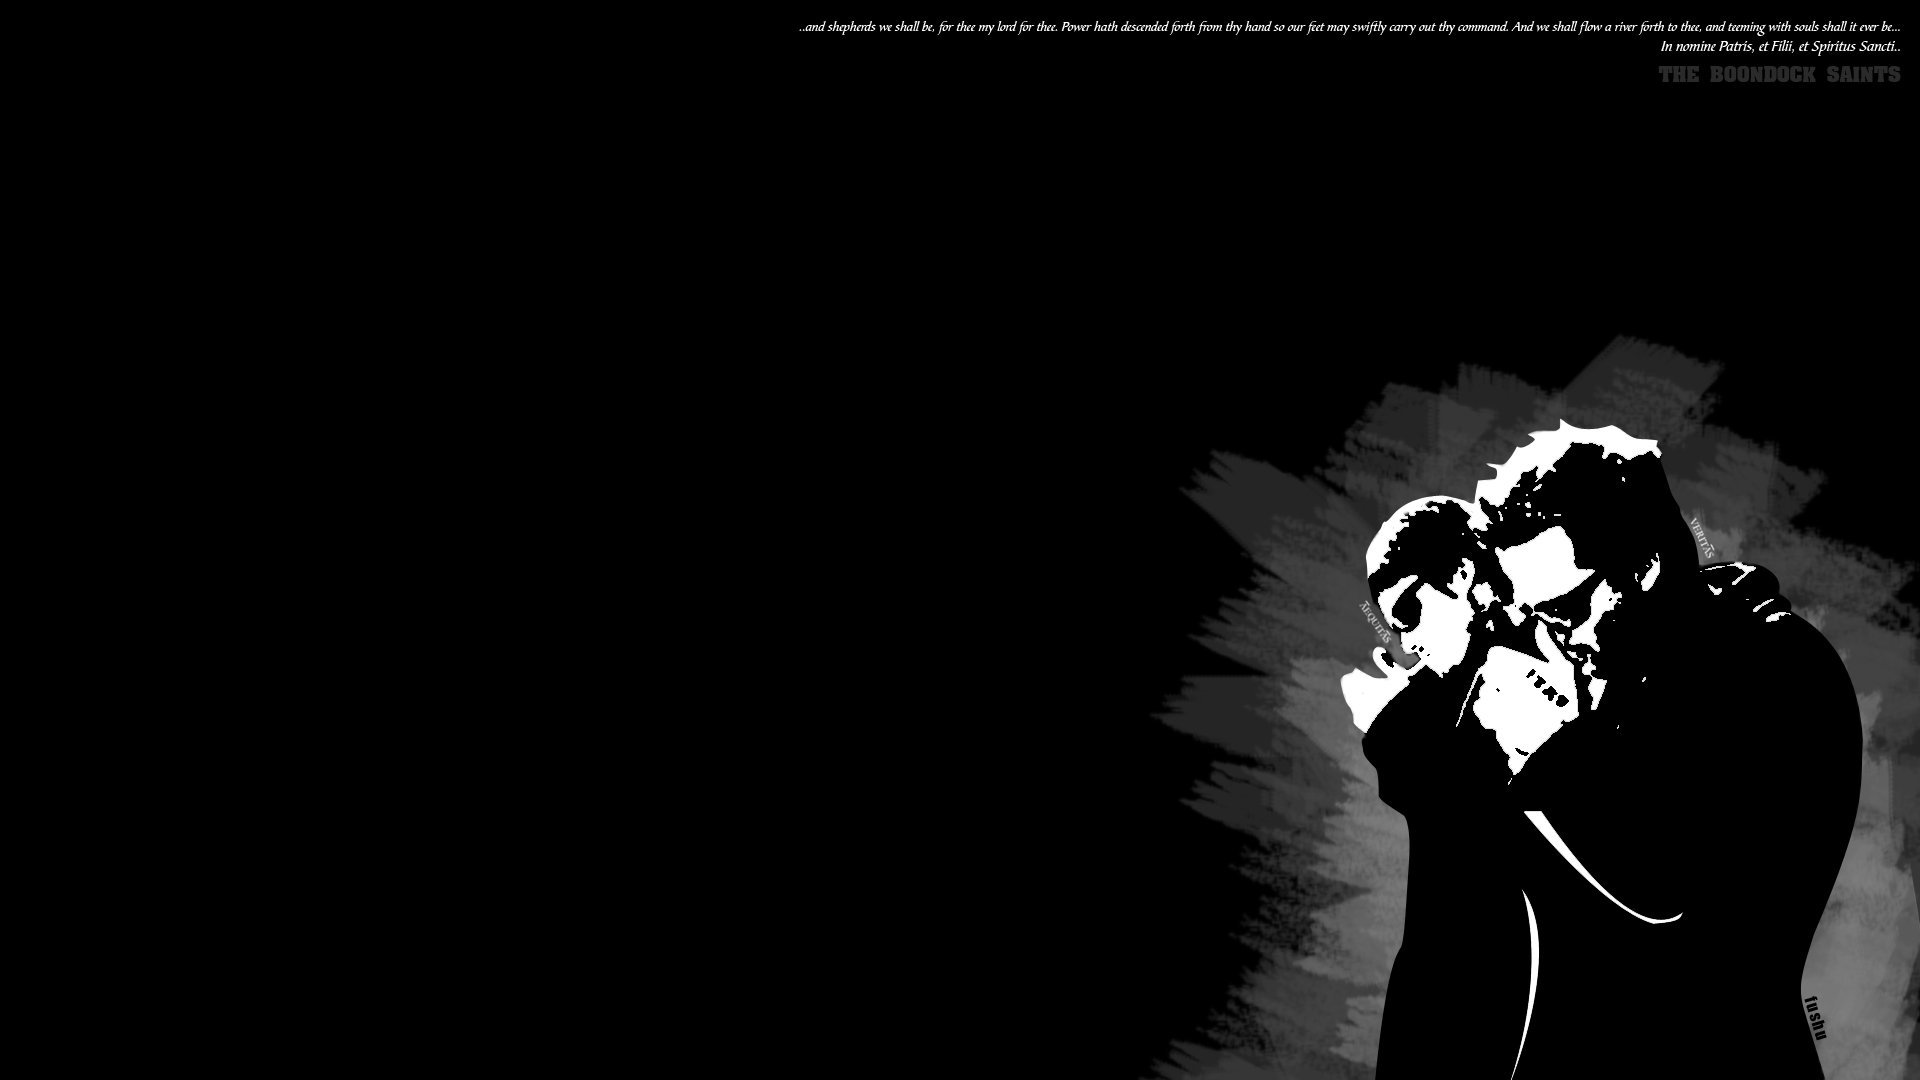 Boondock Saints Full HD Desktop Wallpapers 1080p 1920x1080